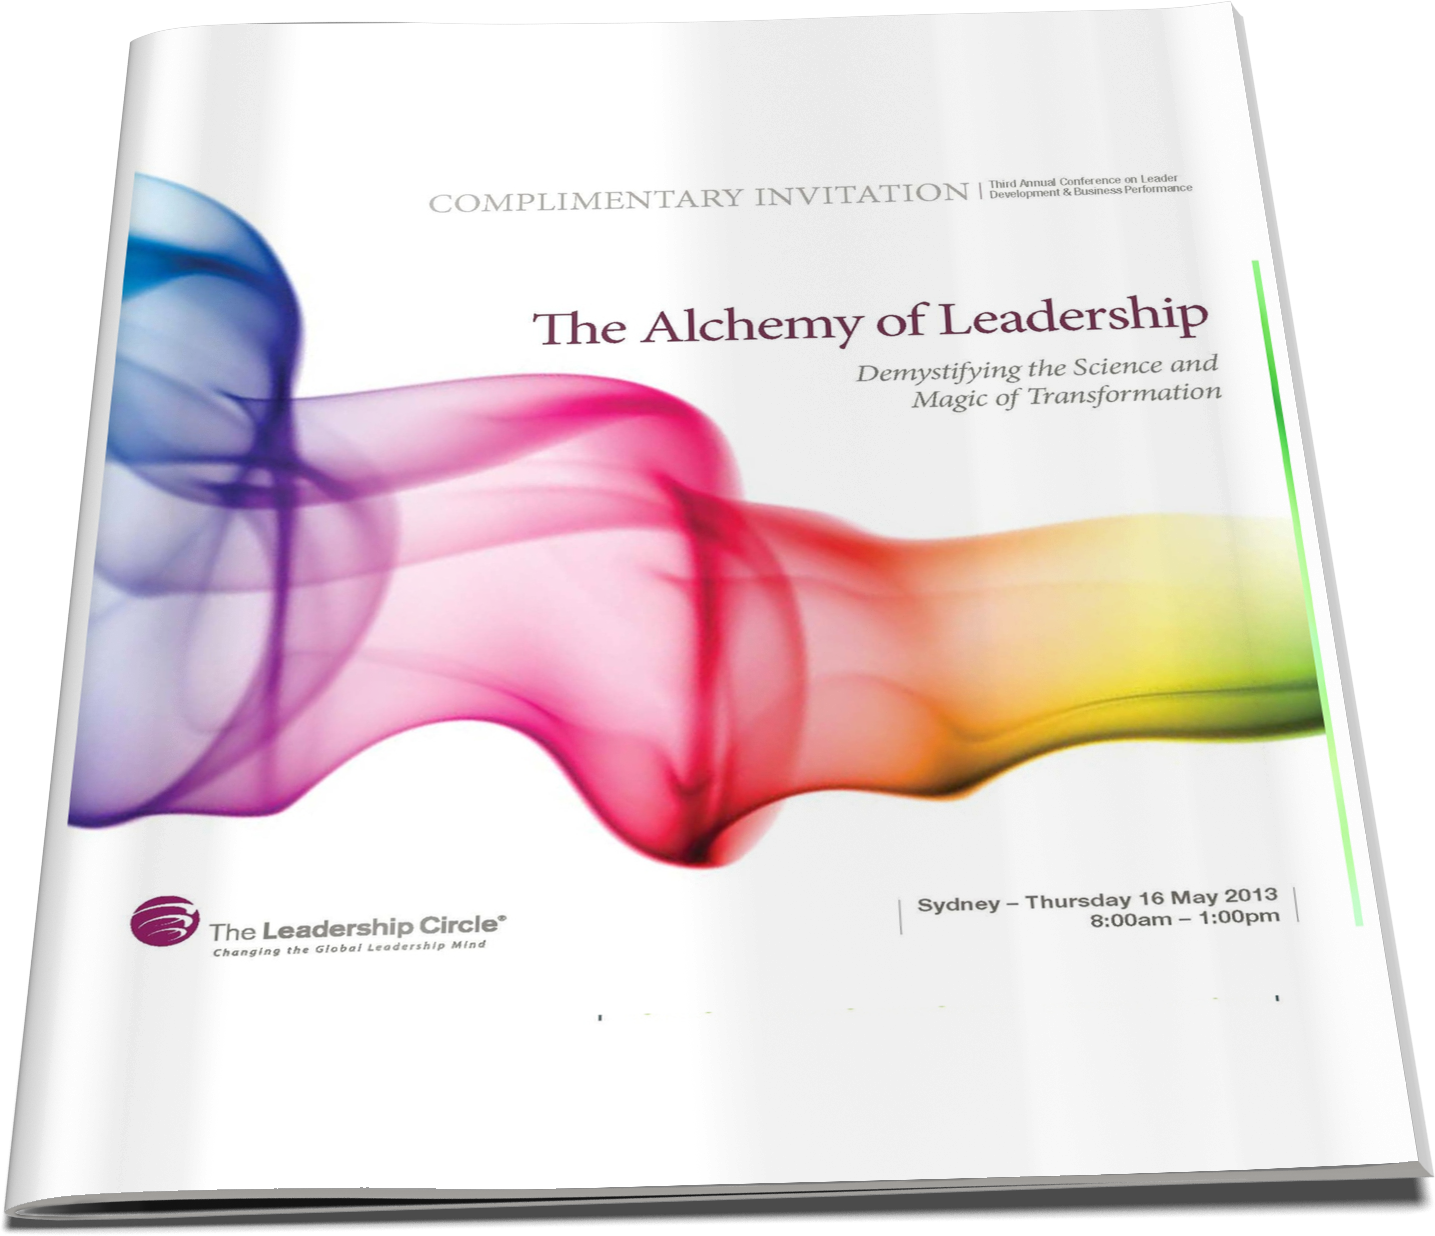 16 May, 2013 - The Alchemy of Leadership: Demystifying the Science and Magic of Transformation